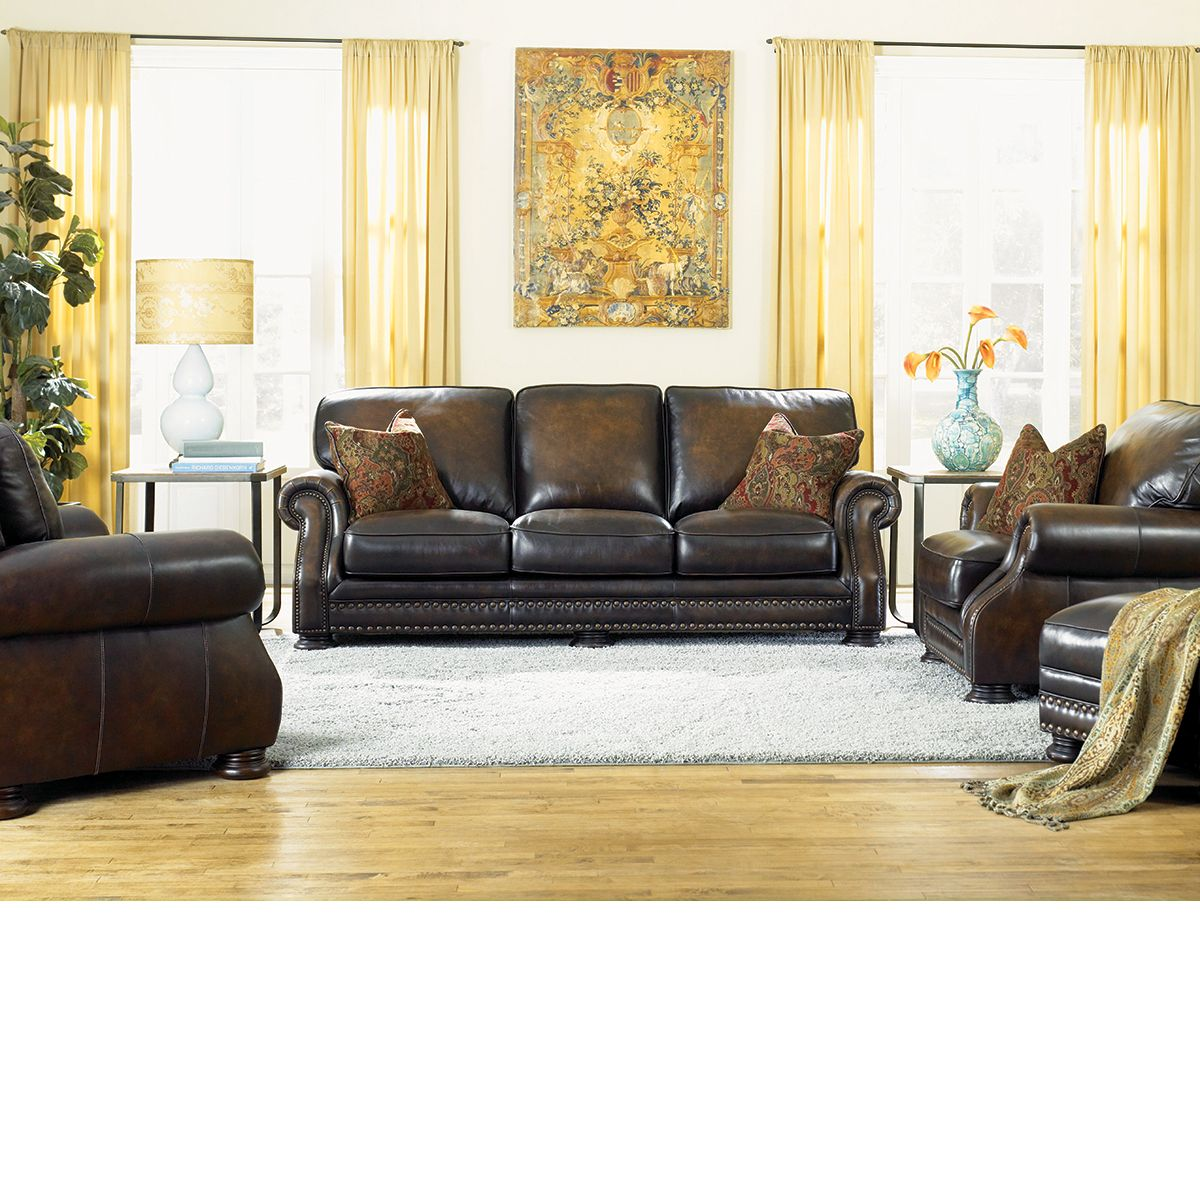 The Dump Luxe Furniture Outlet Luxe Furniture Furniture